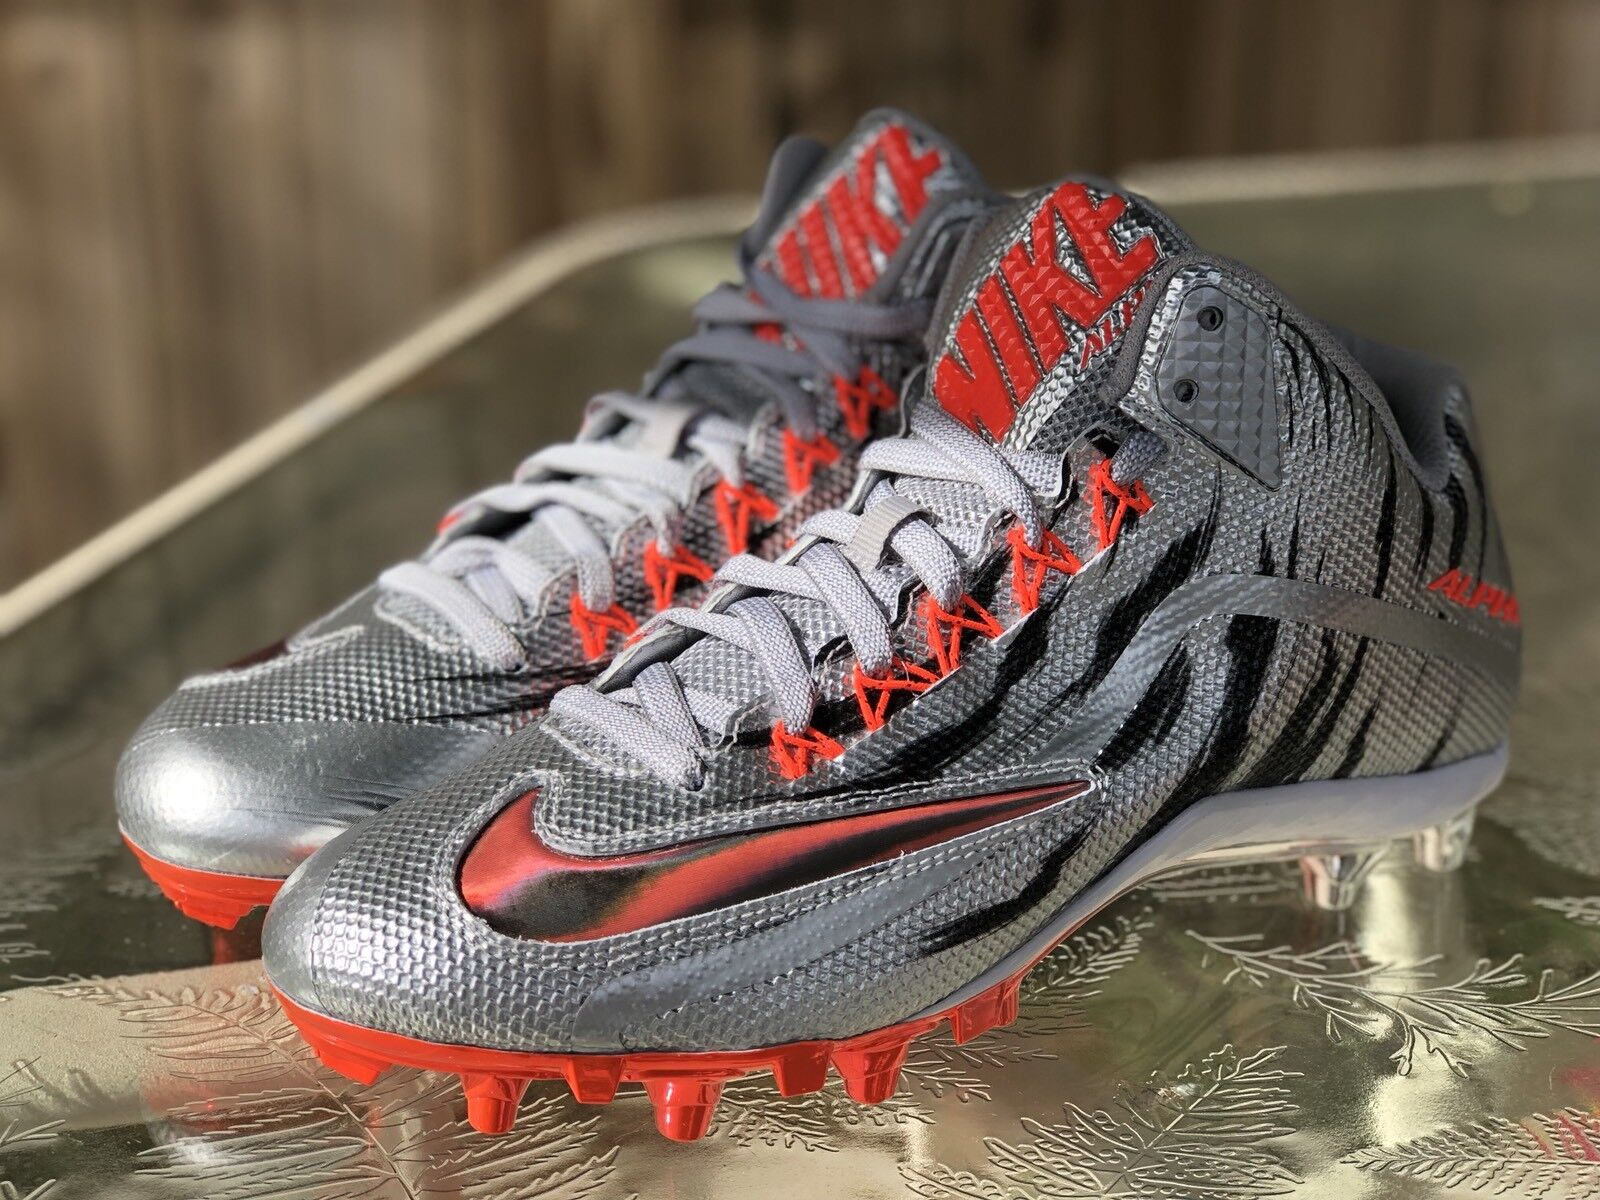 Brand discount Nike Alpha Pro 2 3/4 TD LE 2.0 Metallic Silver Football Cleats 820280-060 Price reduction